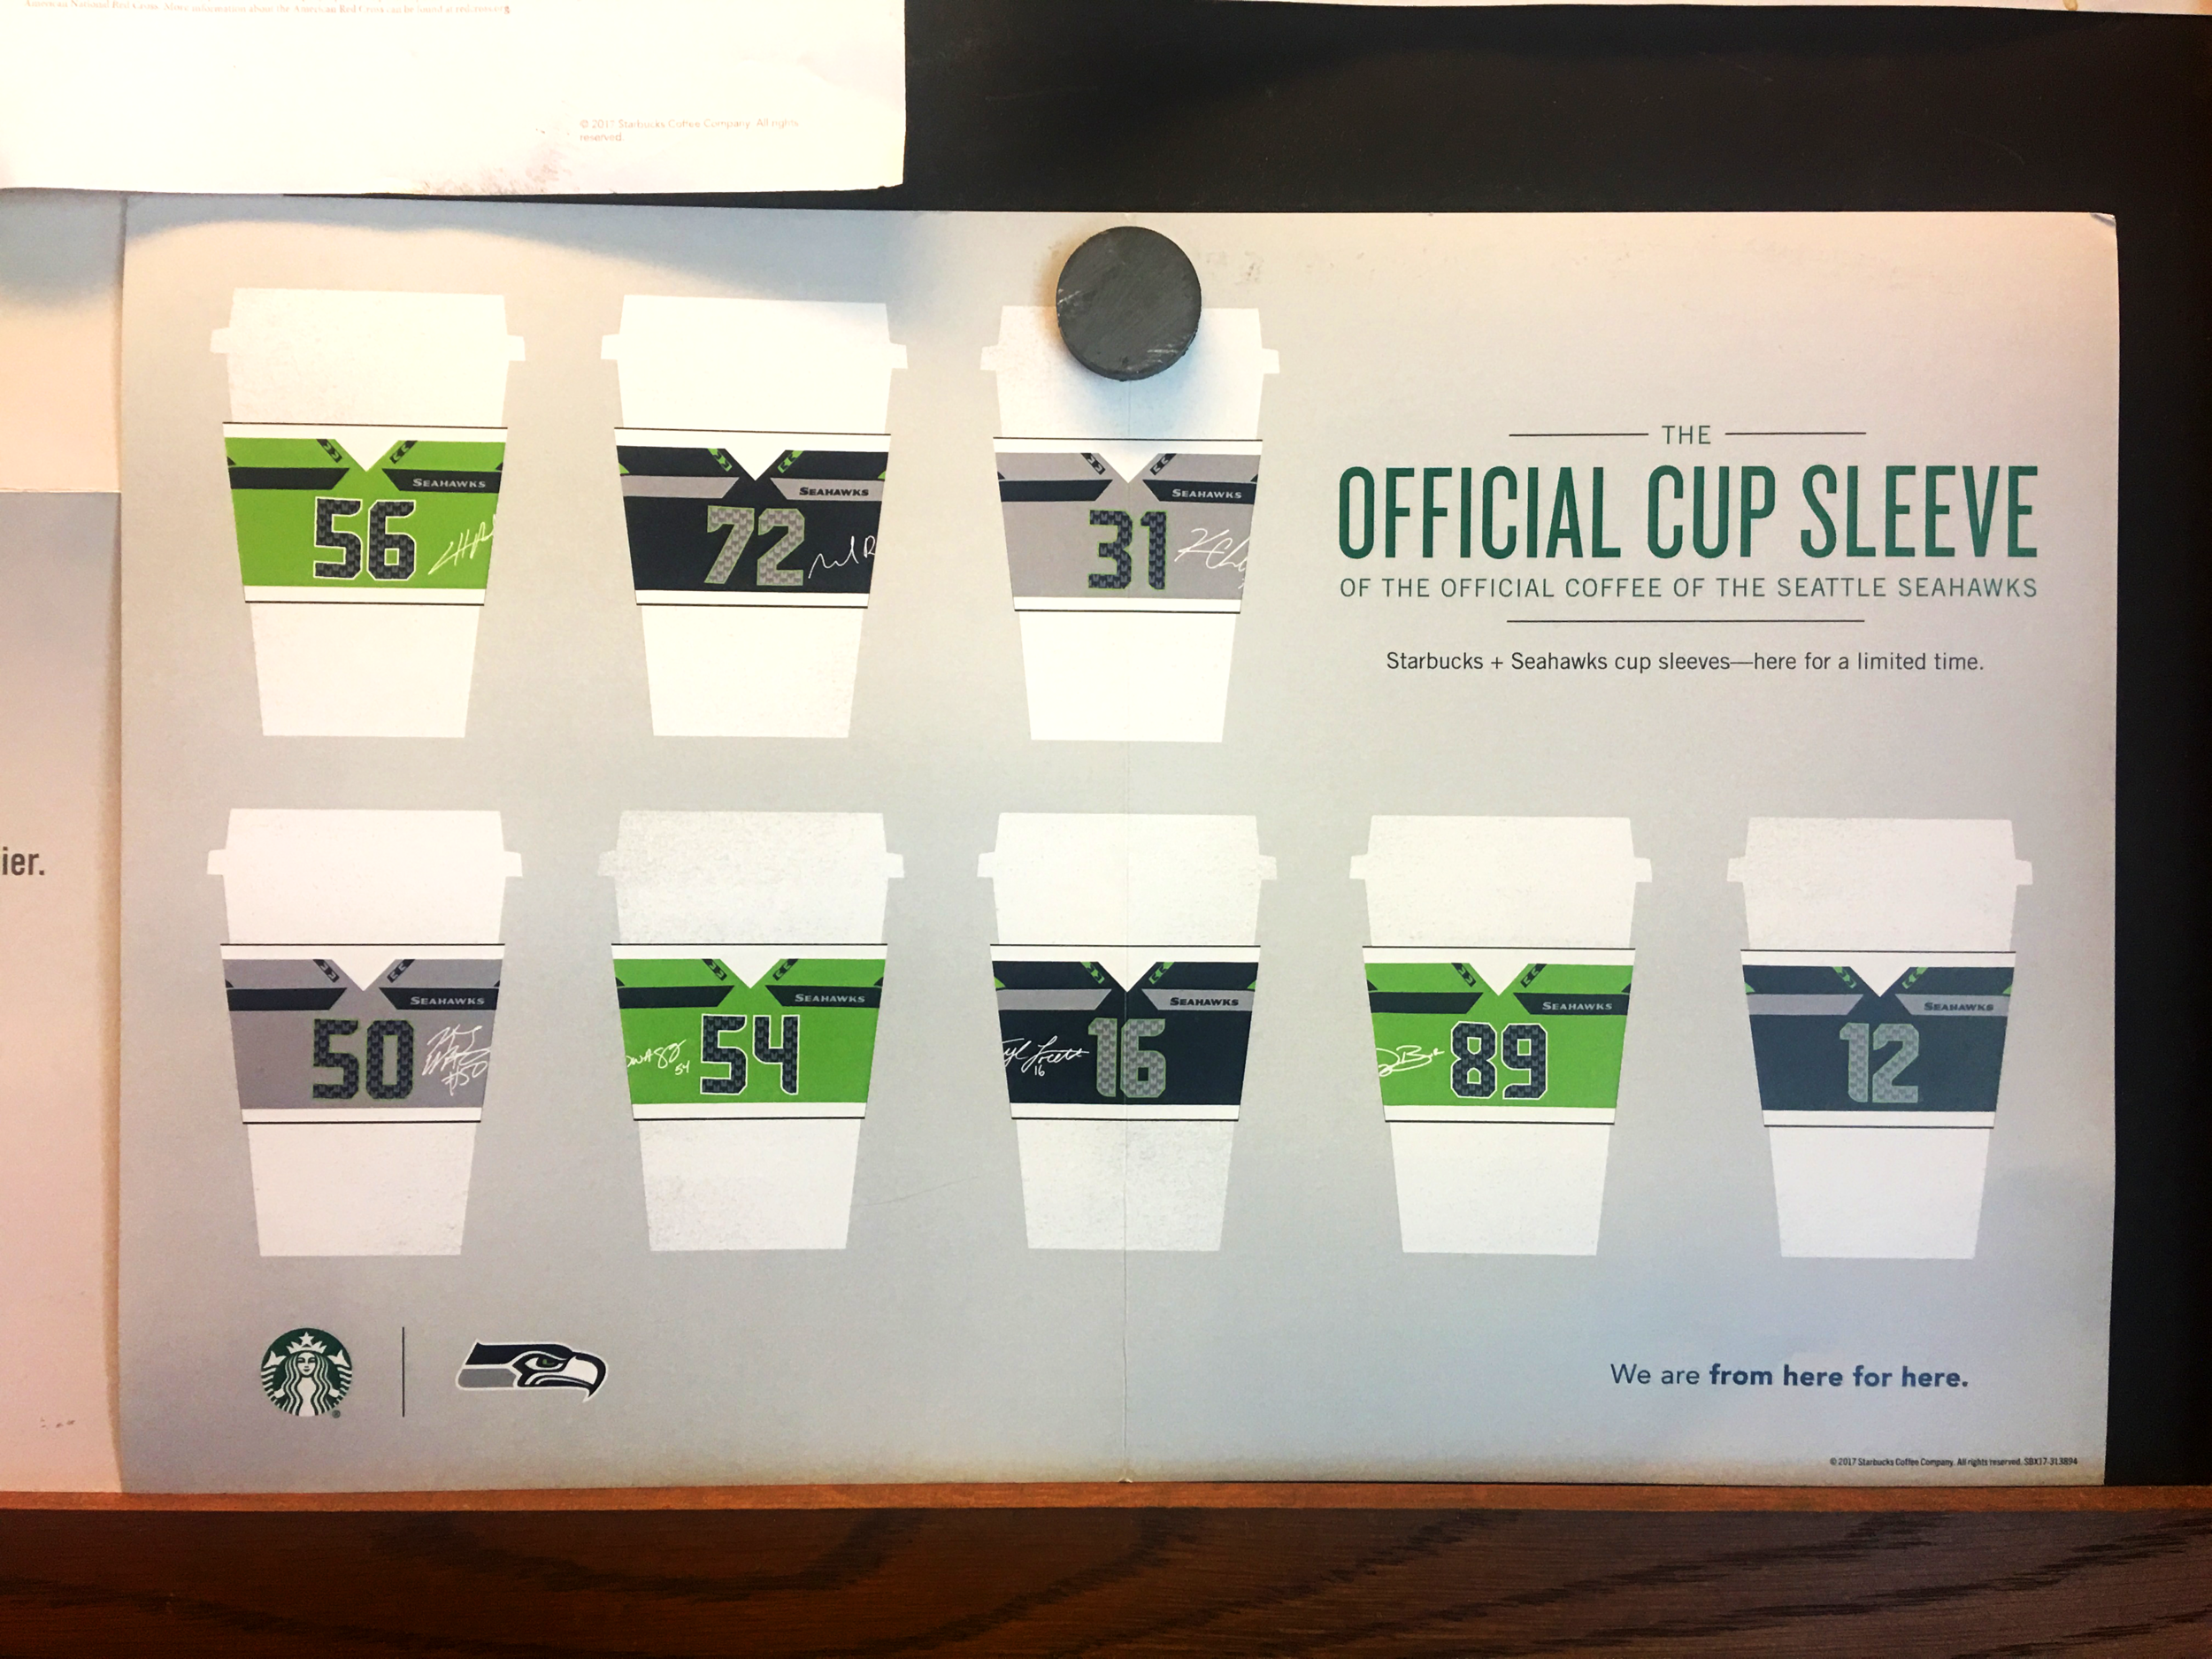 Starbucks + Seahawks Collaboration Cup Sleeve Poster